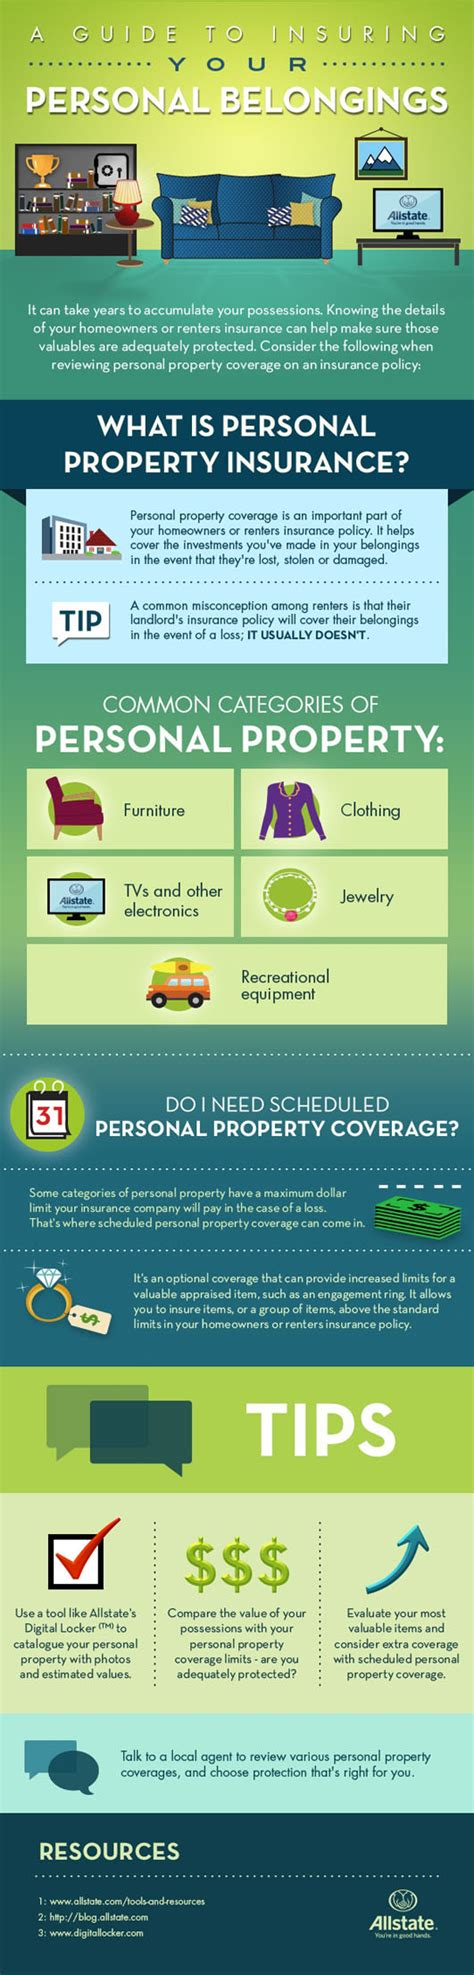 Personal Property Insurance: A Guide to Insuring Your